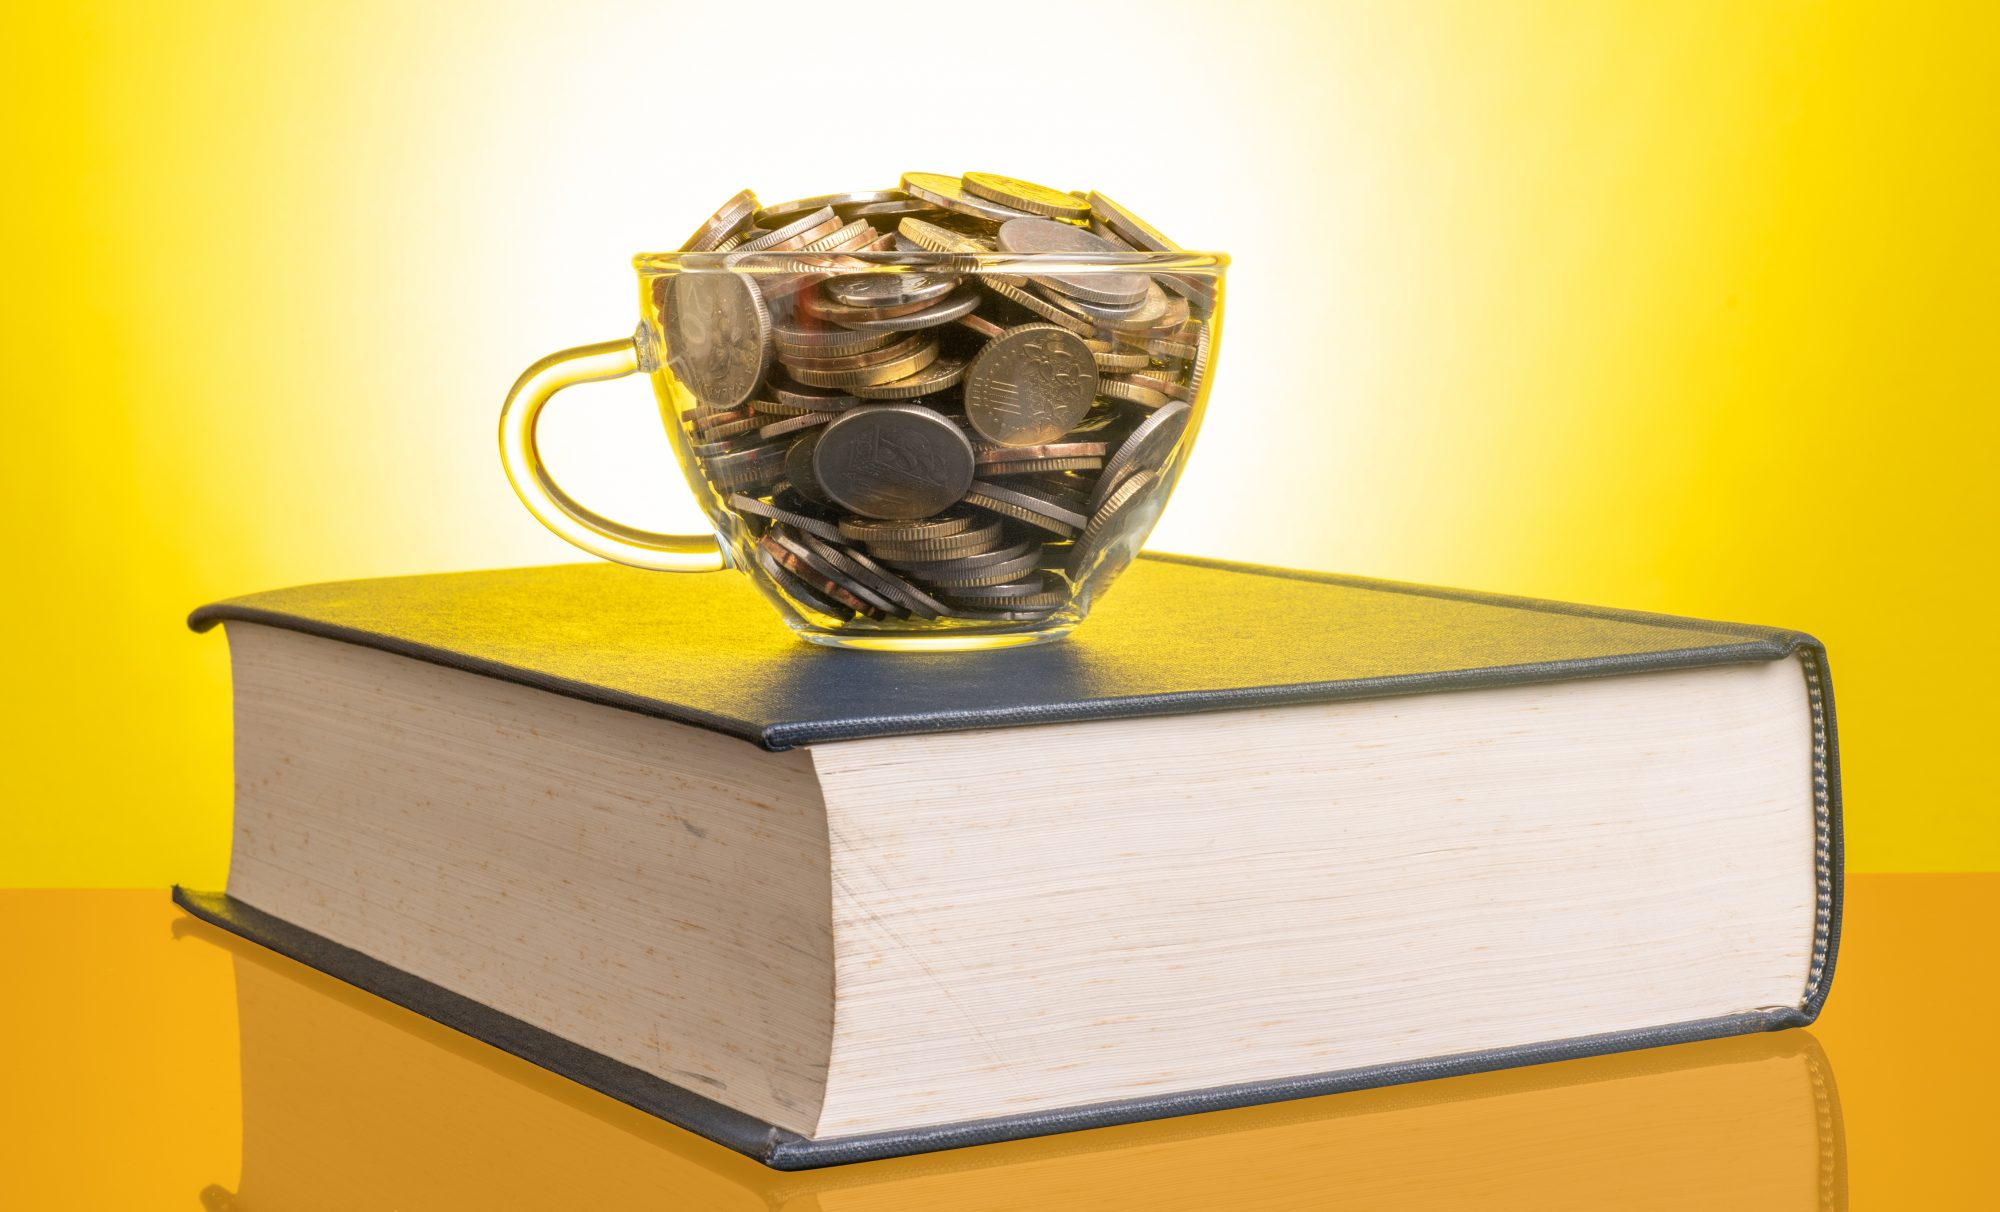 save-money-on-college-tuition: text book and coins